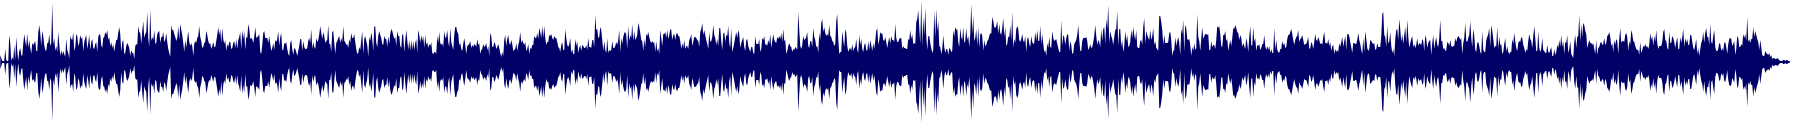 waveform of track #68700